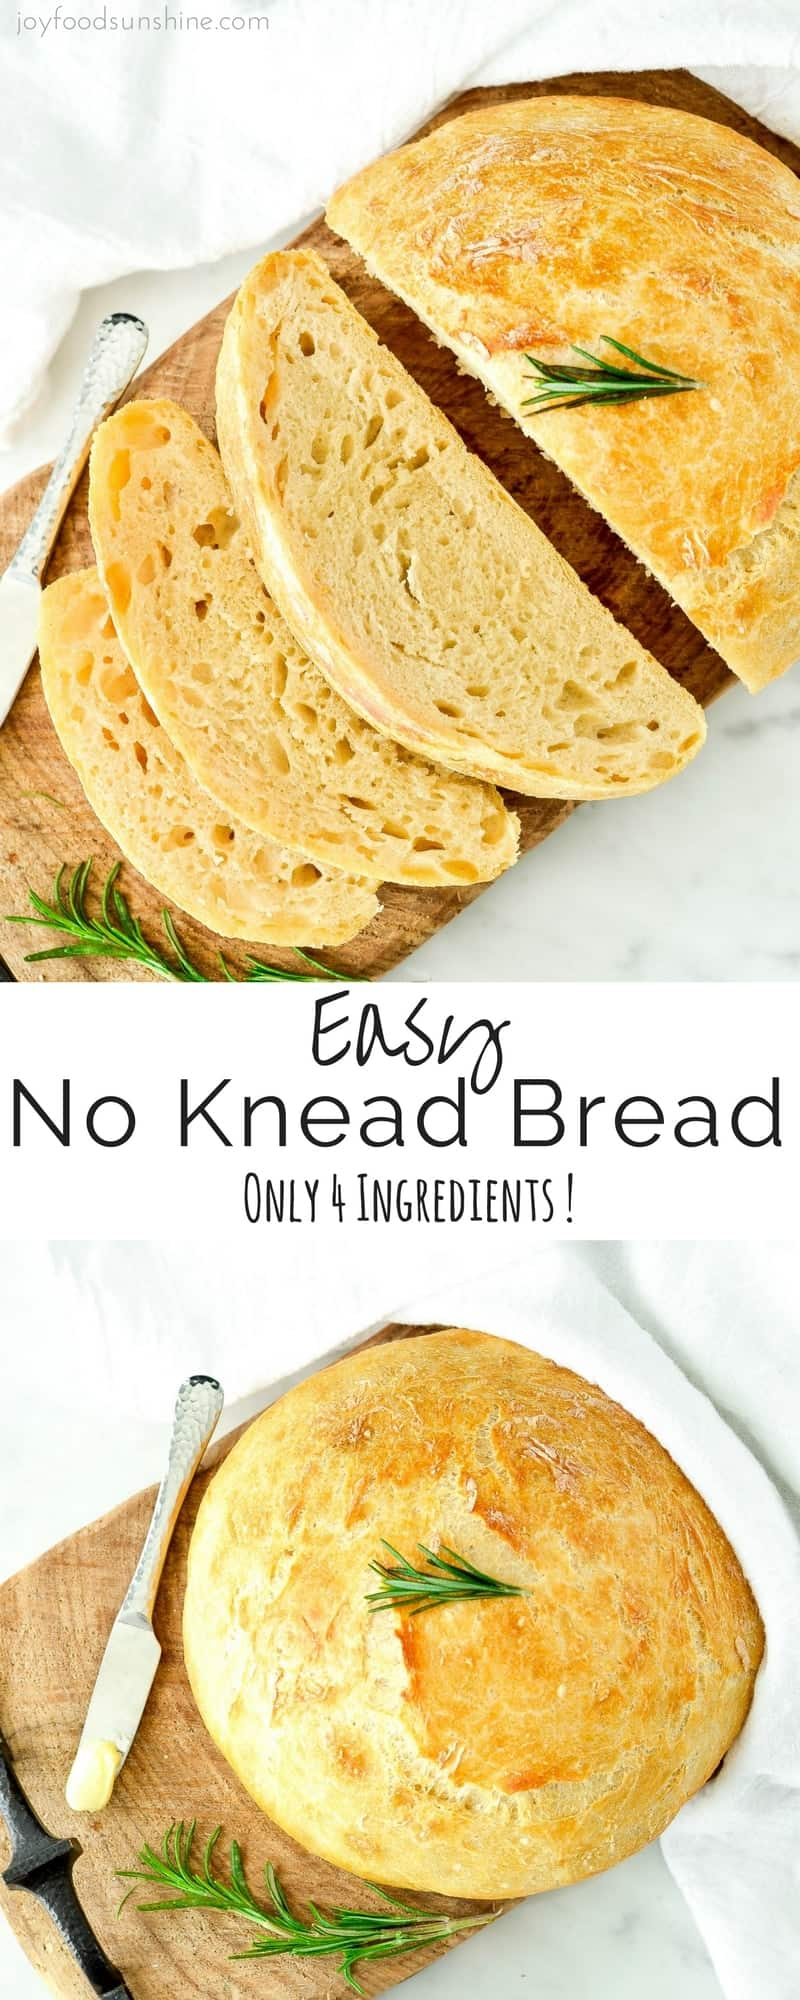 This Easy No Knead Bread is made with only 4 ingredients and takes 5 minutes of prep time! Wow your guests with this delicious homemade bread!